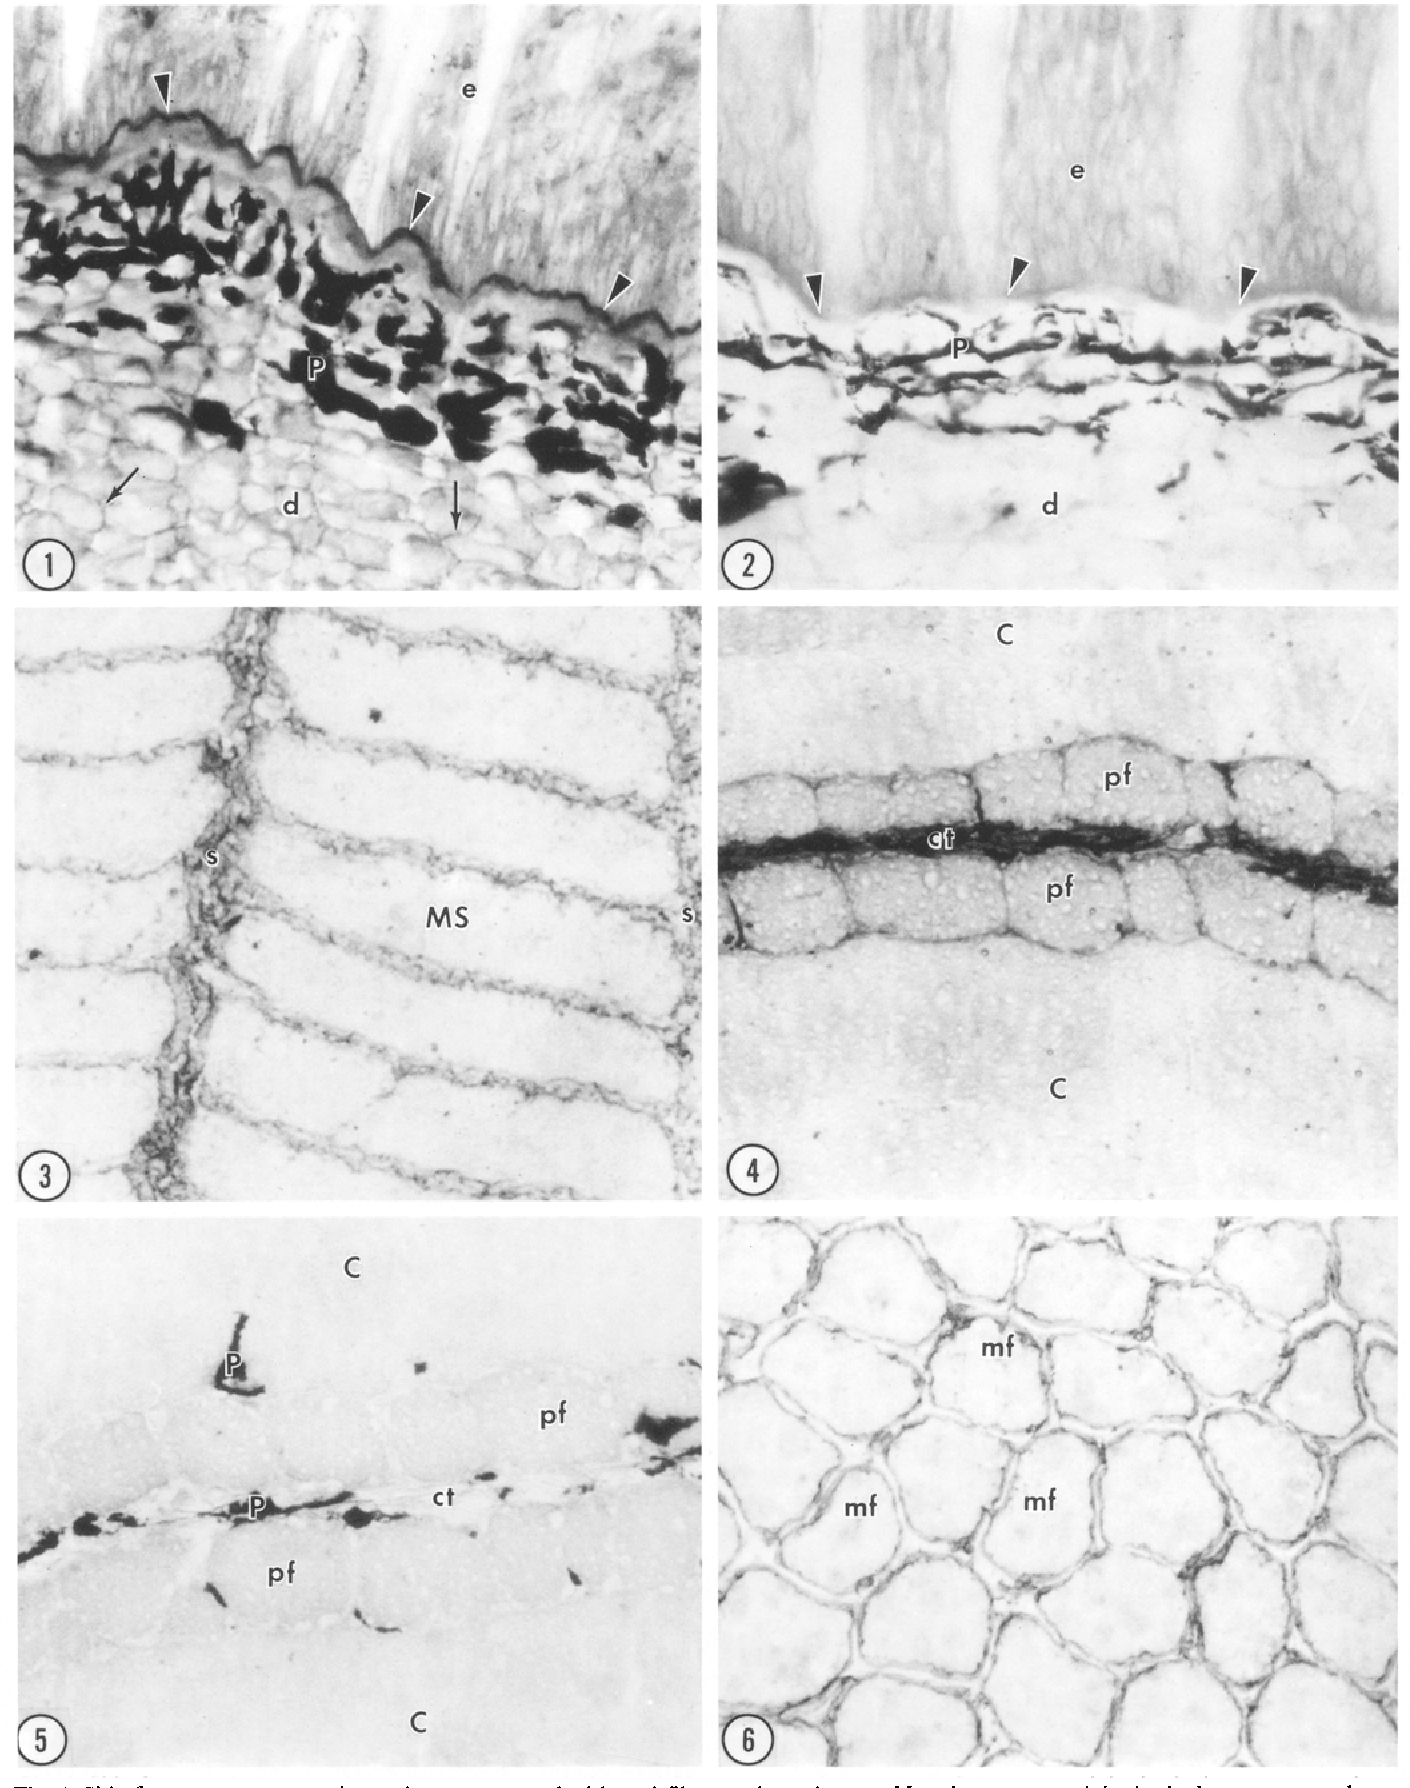 Fig. 1. Skin from an upstream migrant lamprey treated with anti-fibronectin antiserum. Note immunoreactivity in the basement membrane (arrowheads) beneath epidermis (e) and between collagen fibers (arrows) of dermis (d). P pigment, x 390